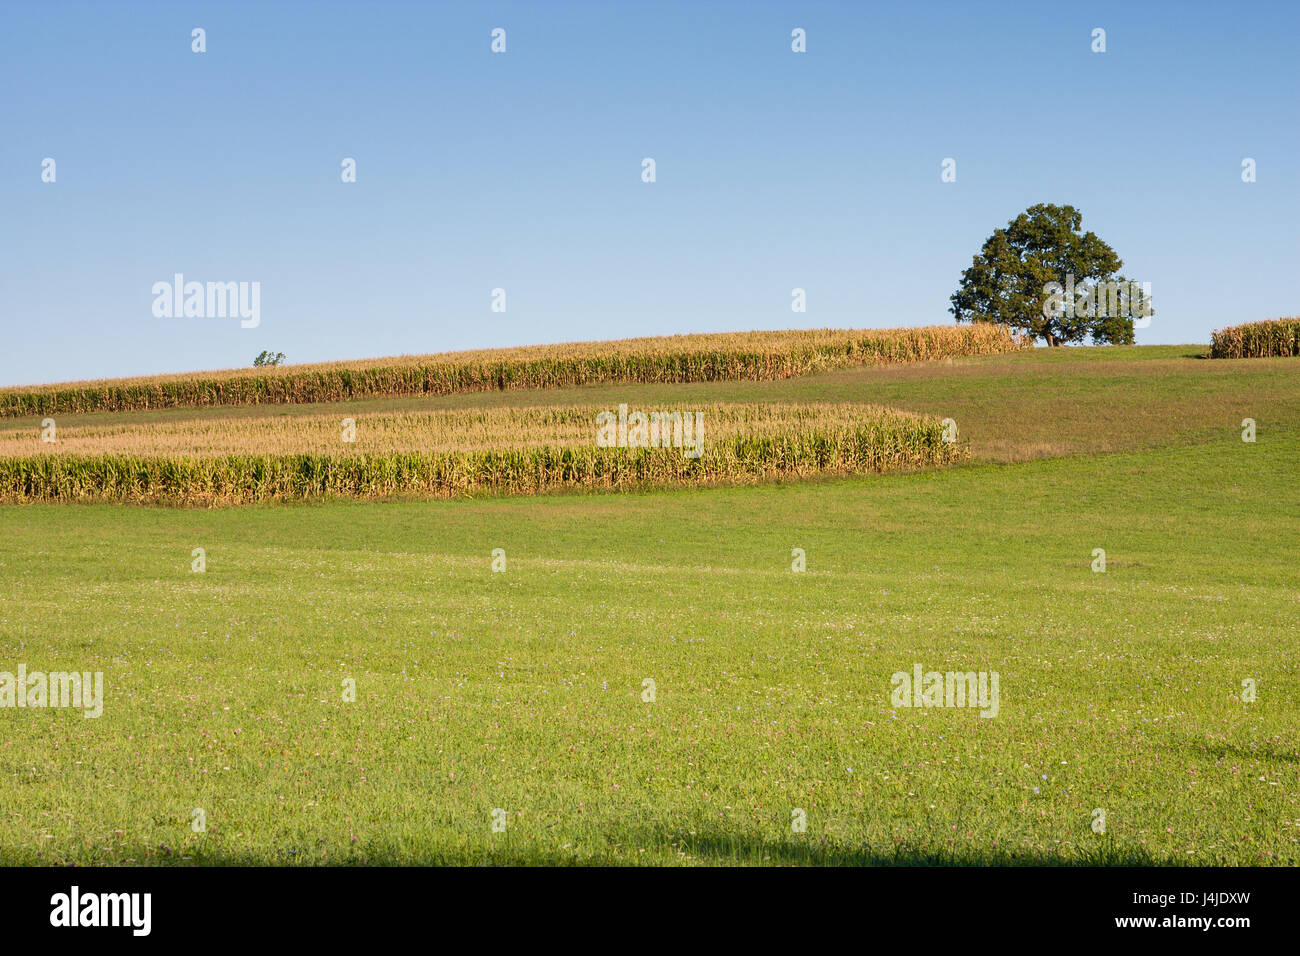 Countryside of ripe corn and one maple tree against blue sky - Stock Image